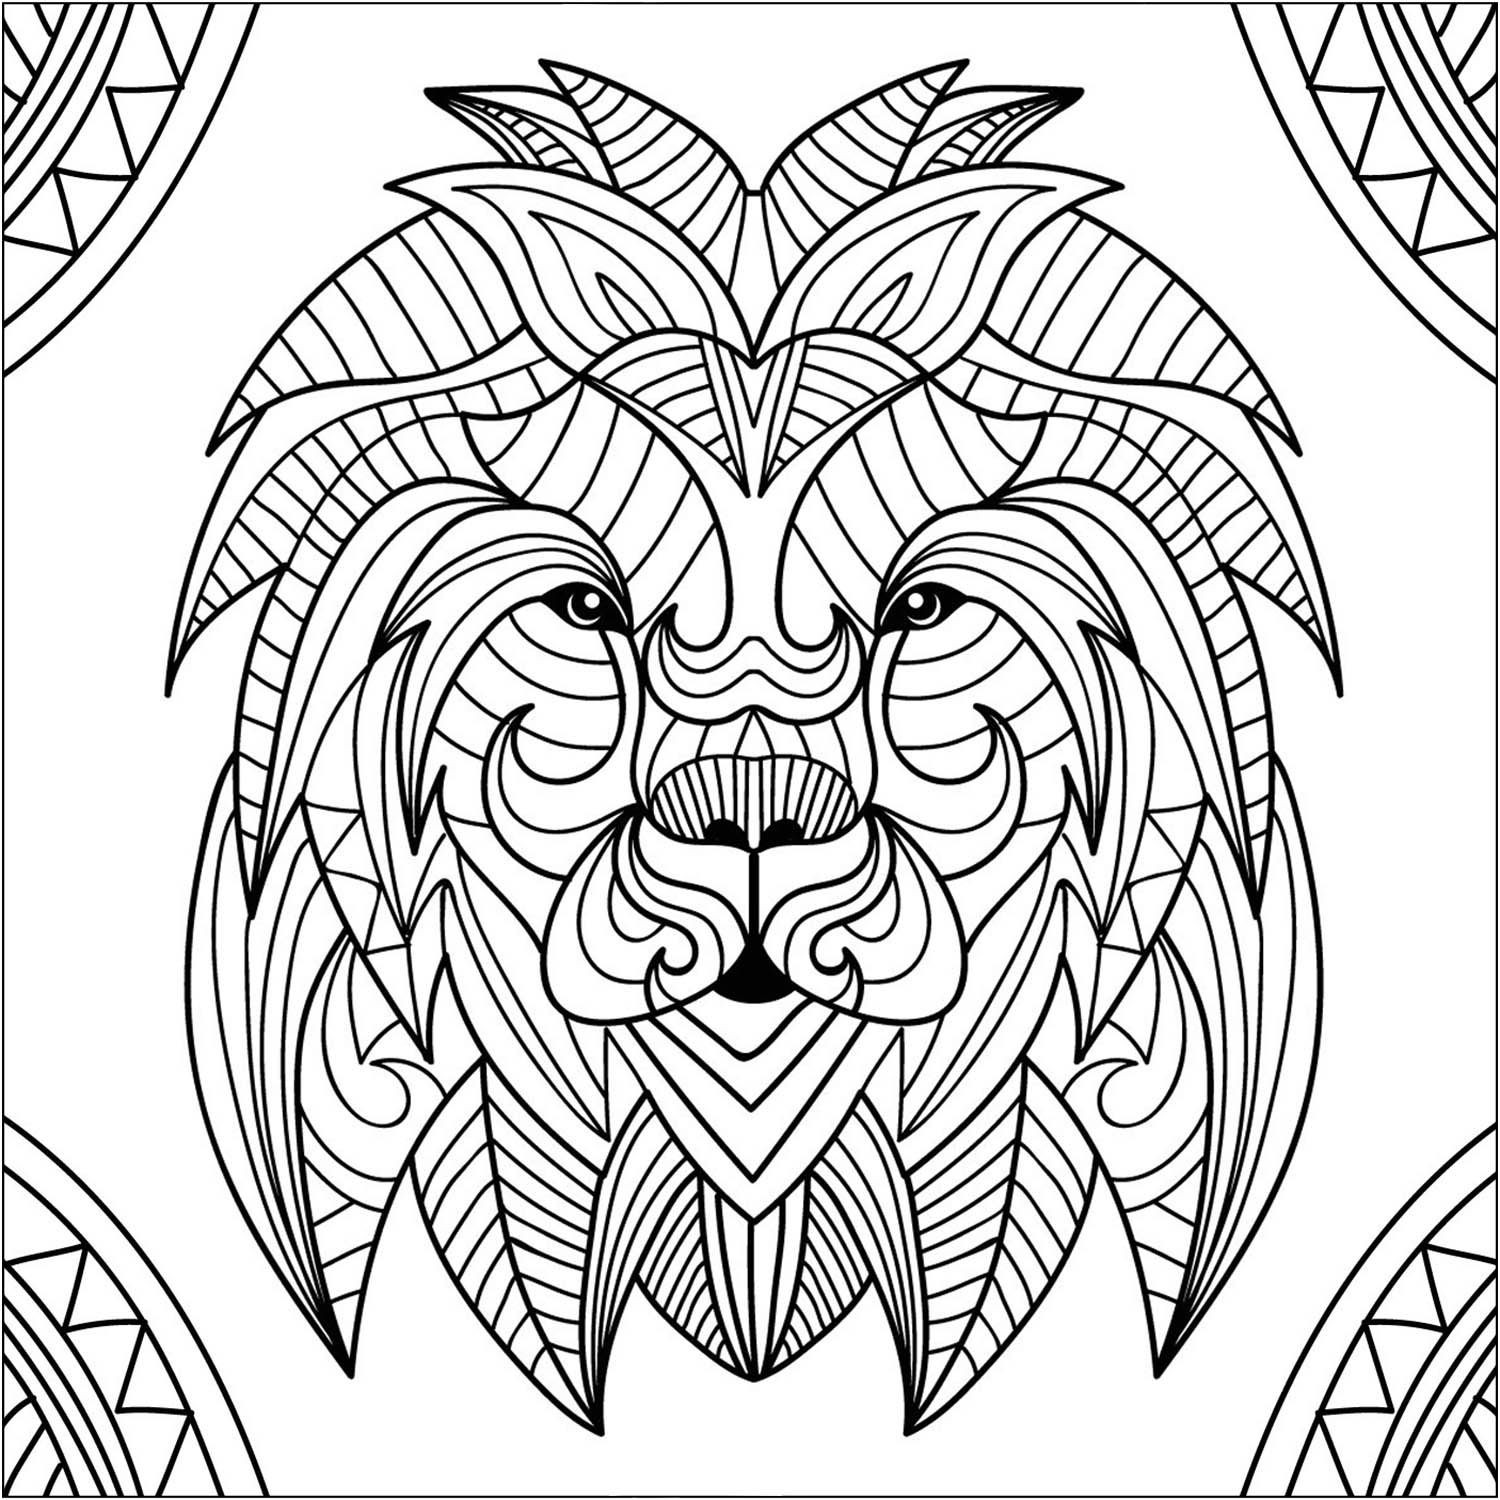 picture of a lion to color coloring ville a to picture lion color of